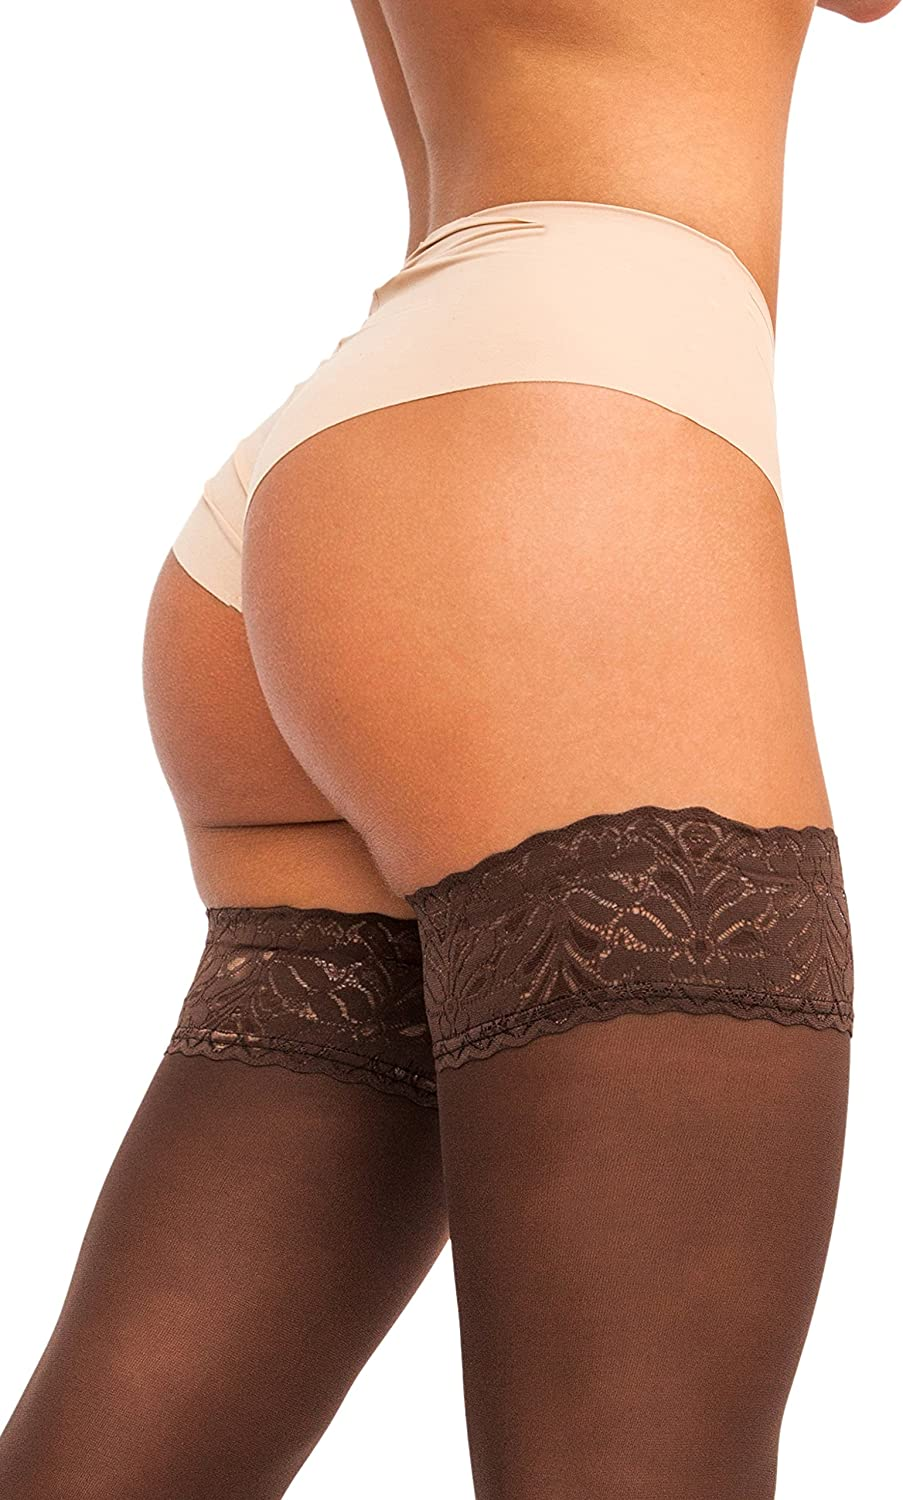 Made in Italy sofsy Lace Thigh High Stockings for Women Hold Up Nylon Pantyhose 60 Den